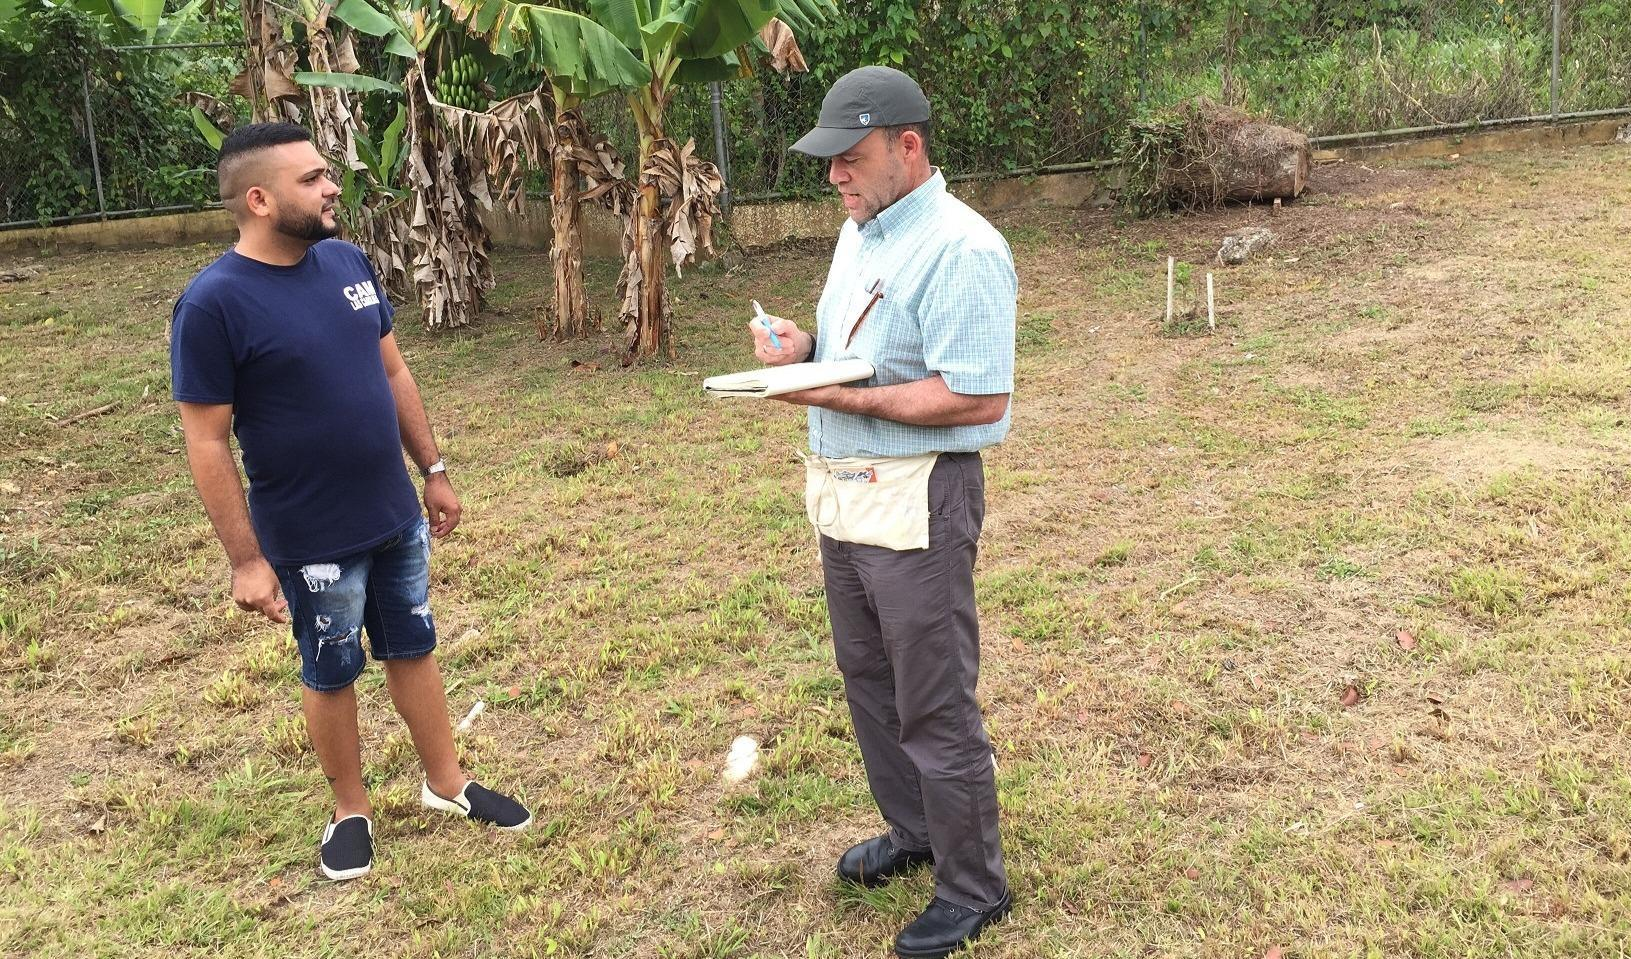 two men standing in a field and talking